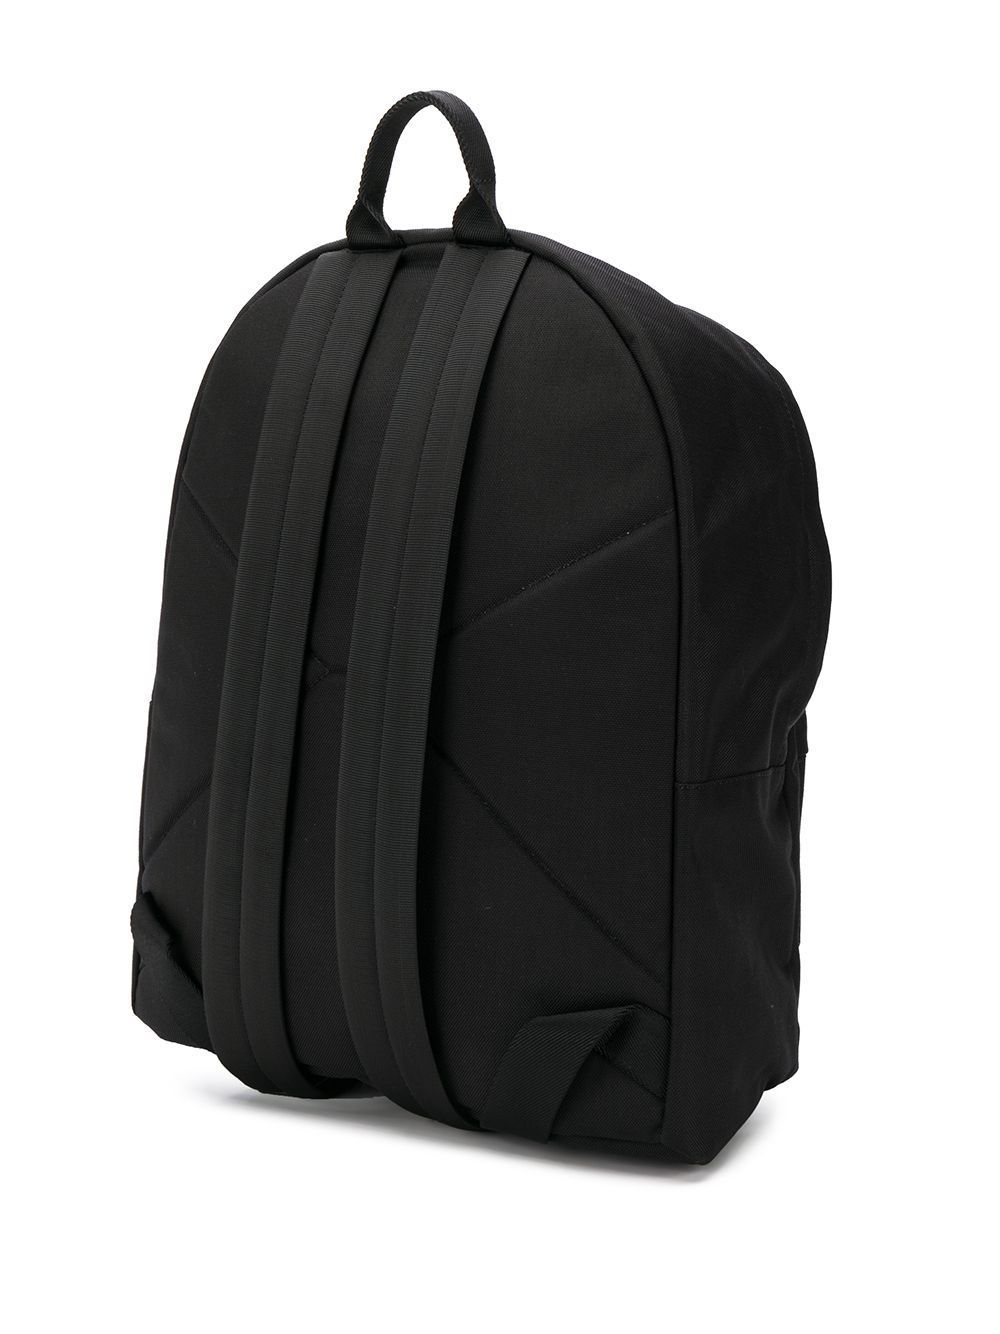 MARCELO BURLON MEN'S CMNB006R20FAB0011025 BLACK POLYESTER BACKPACK